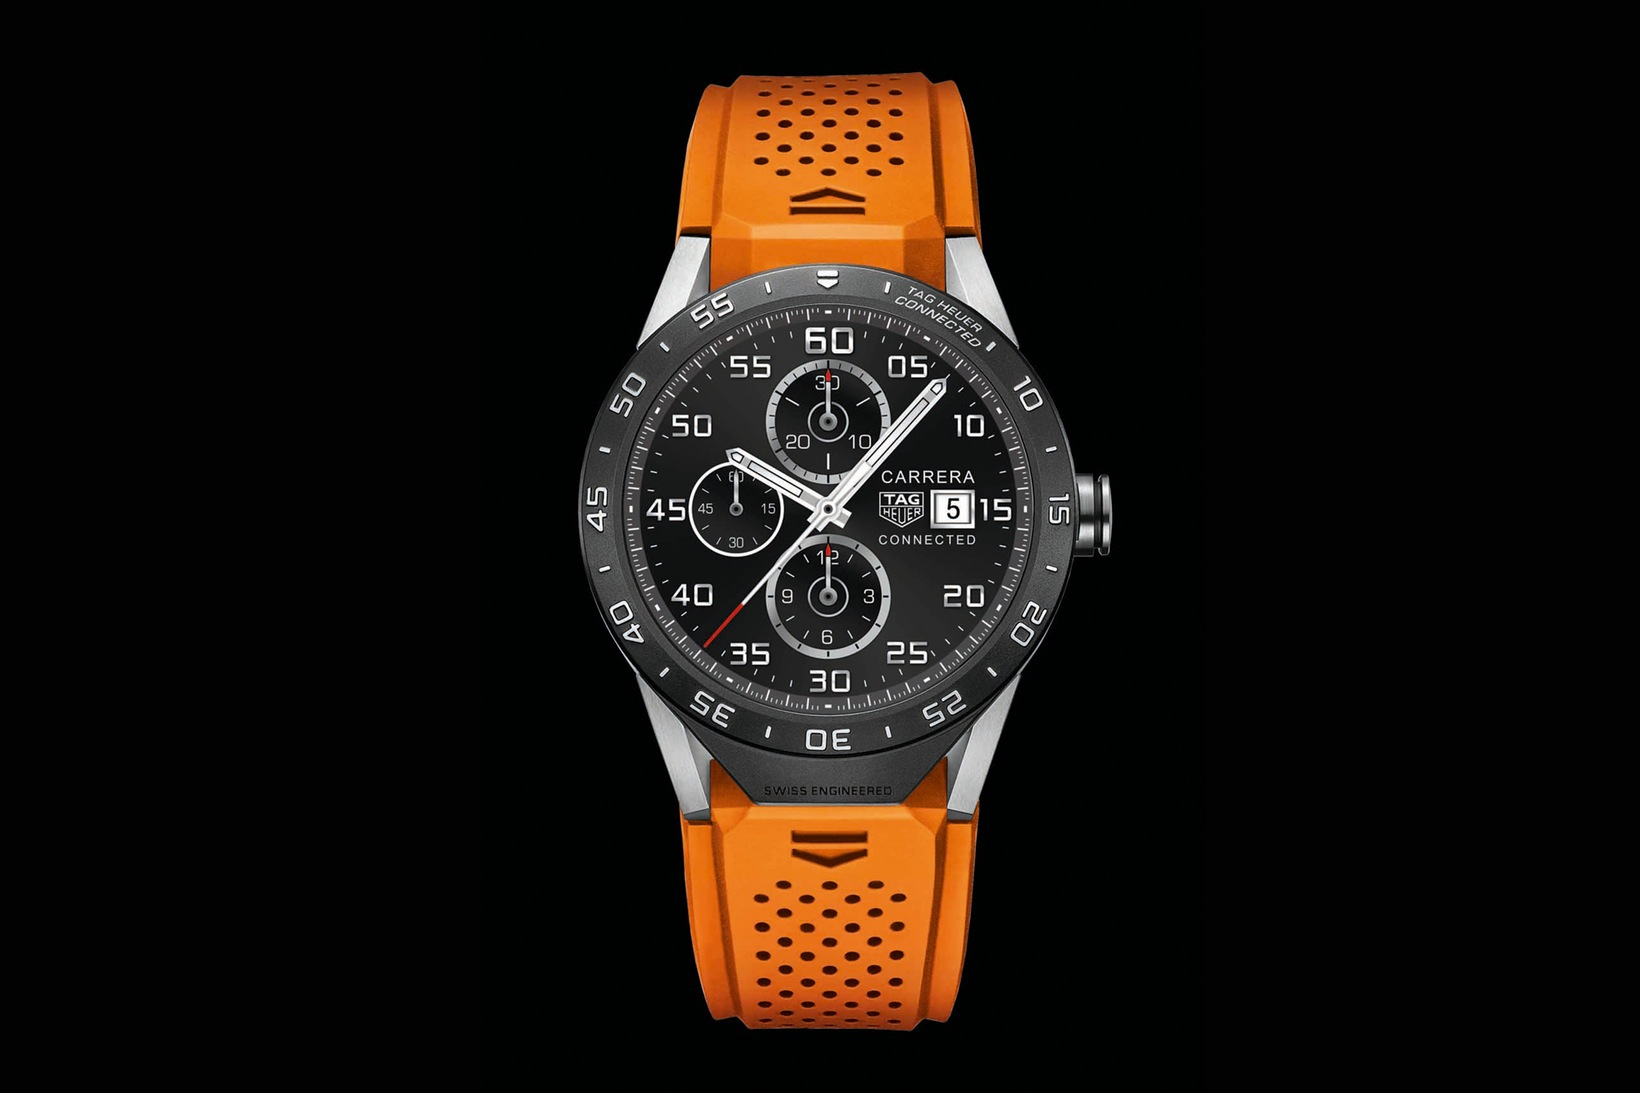 tag-heuer-connected-watch-2.jpg